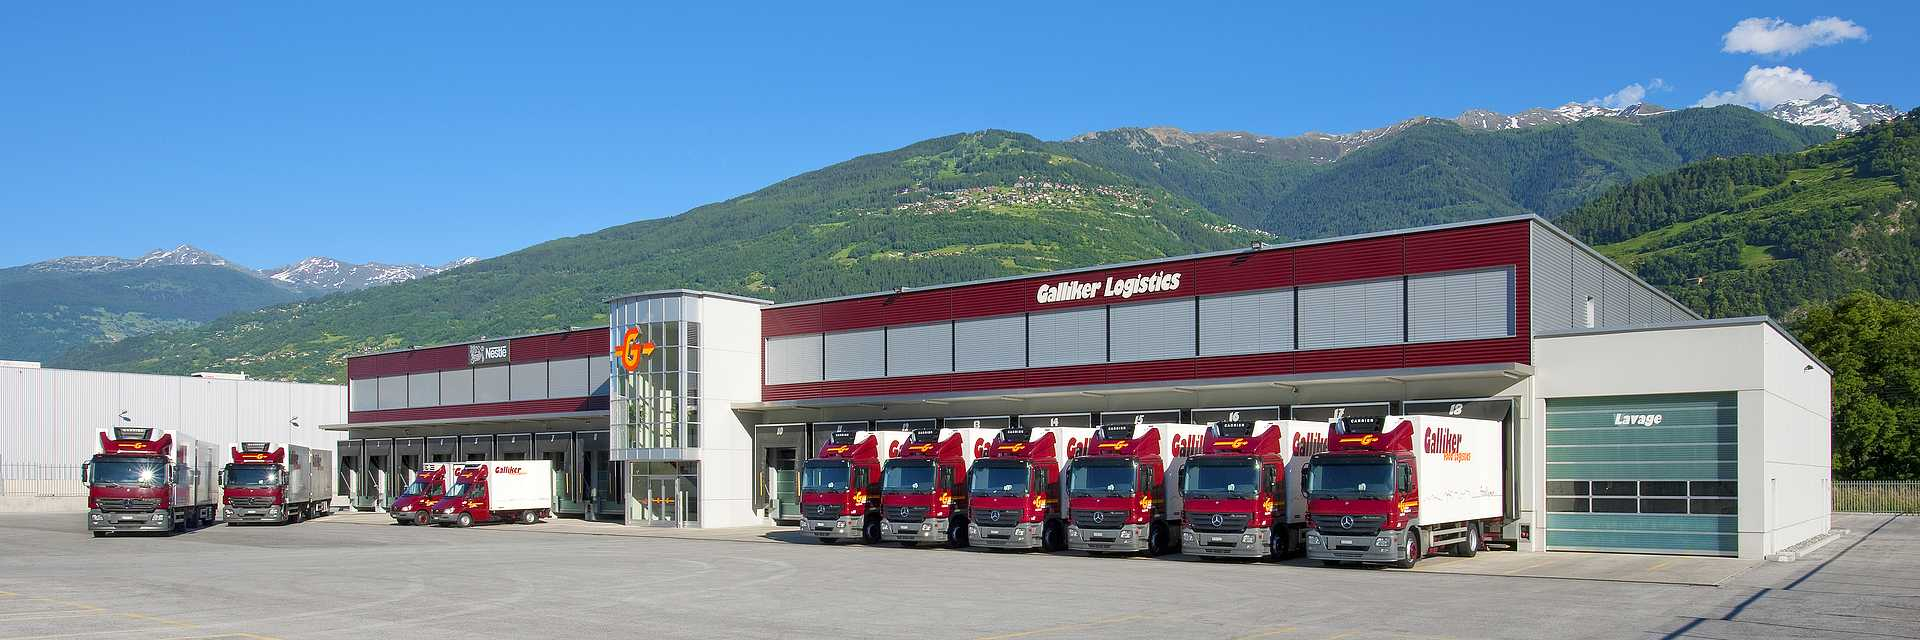 Galliker Transport Logistik TopPicture 036